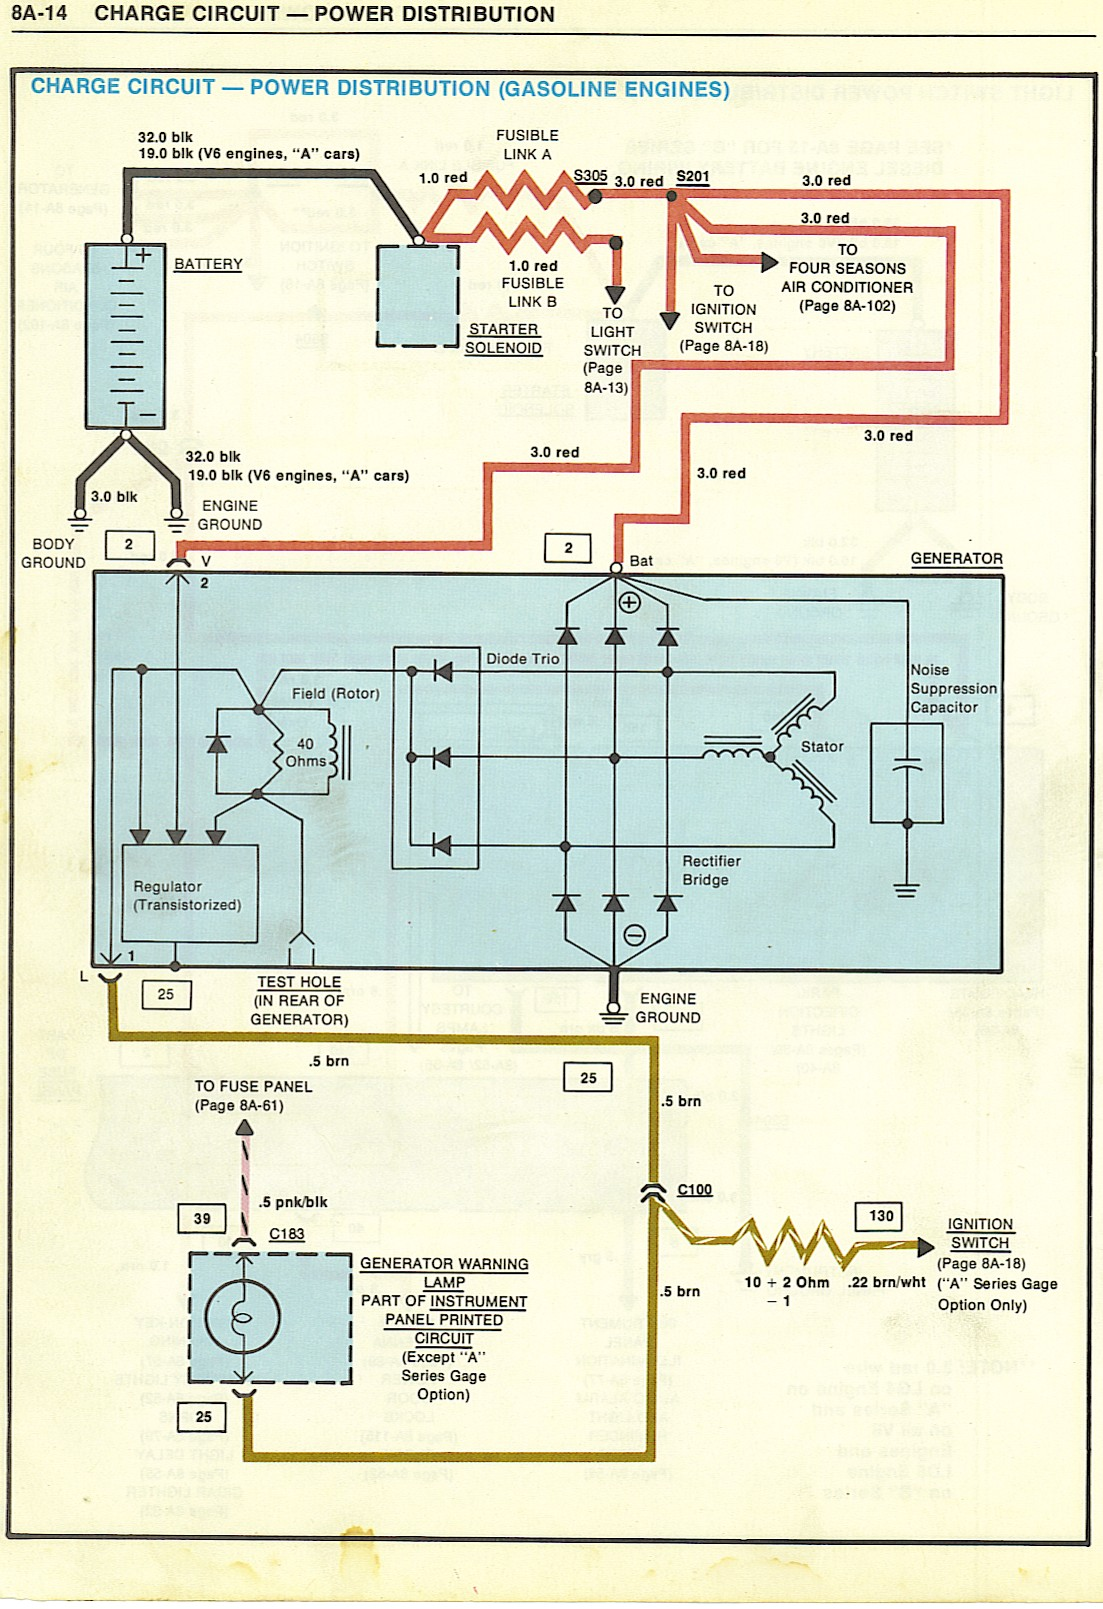 Amp Gauge Wiring Diagram 1968 Chevy 1979 Elce Engine Bay Wiring Problems El Camino Central